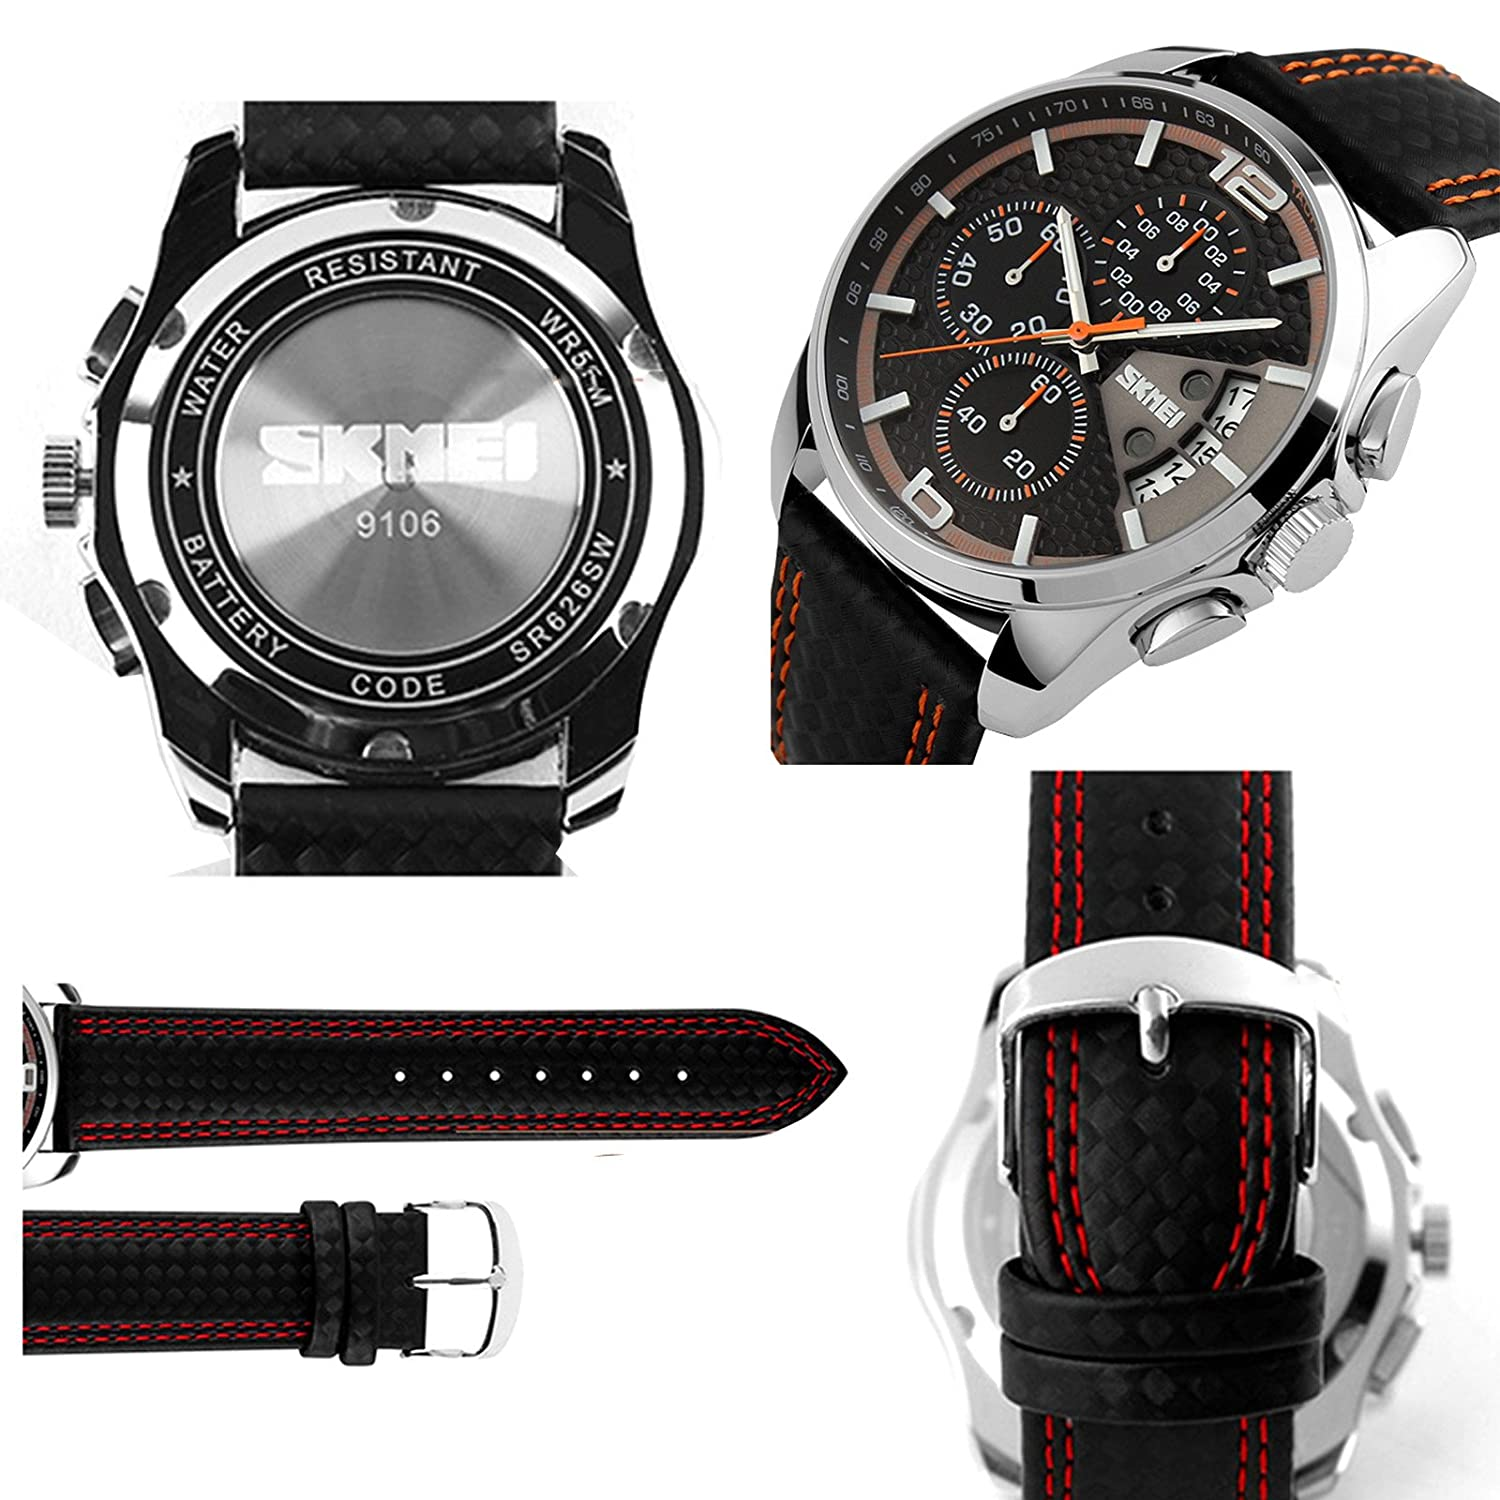 Amazon.com: Relojes de Hombre Sport LED Digital Military Water Resistant Watch Digital Men RE0026: Watches